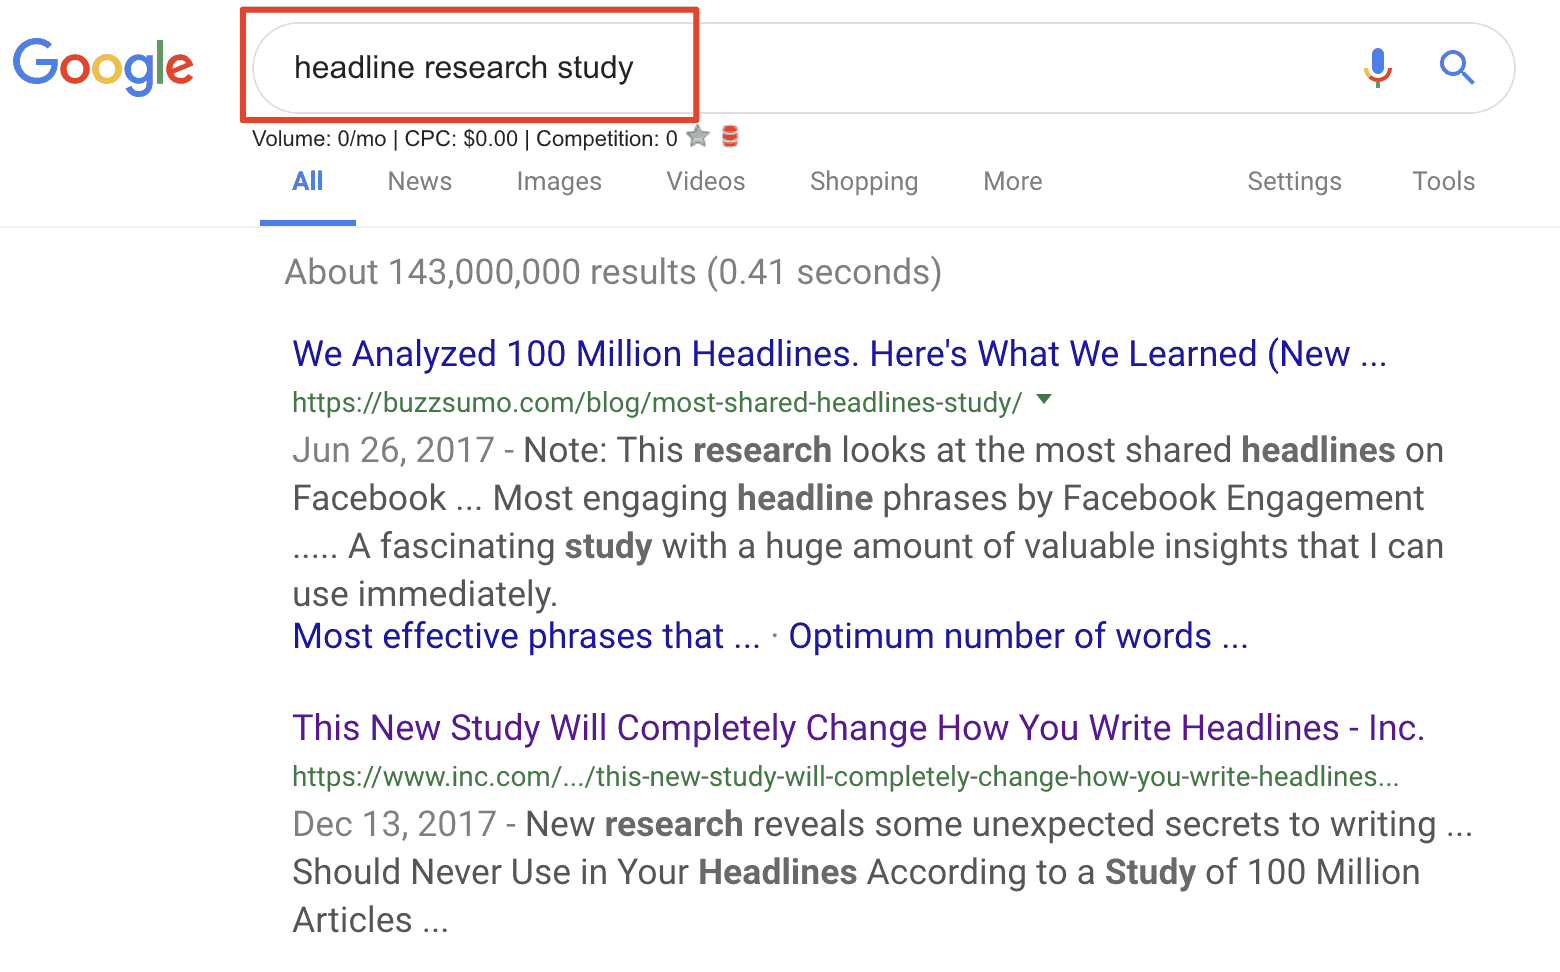 Headlines research study